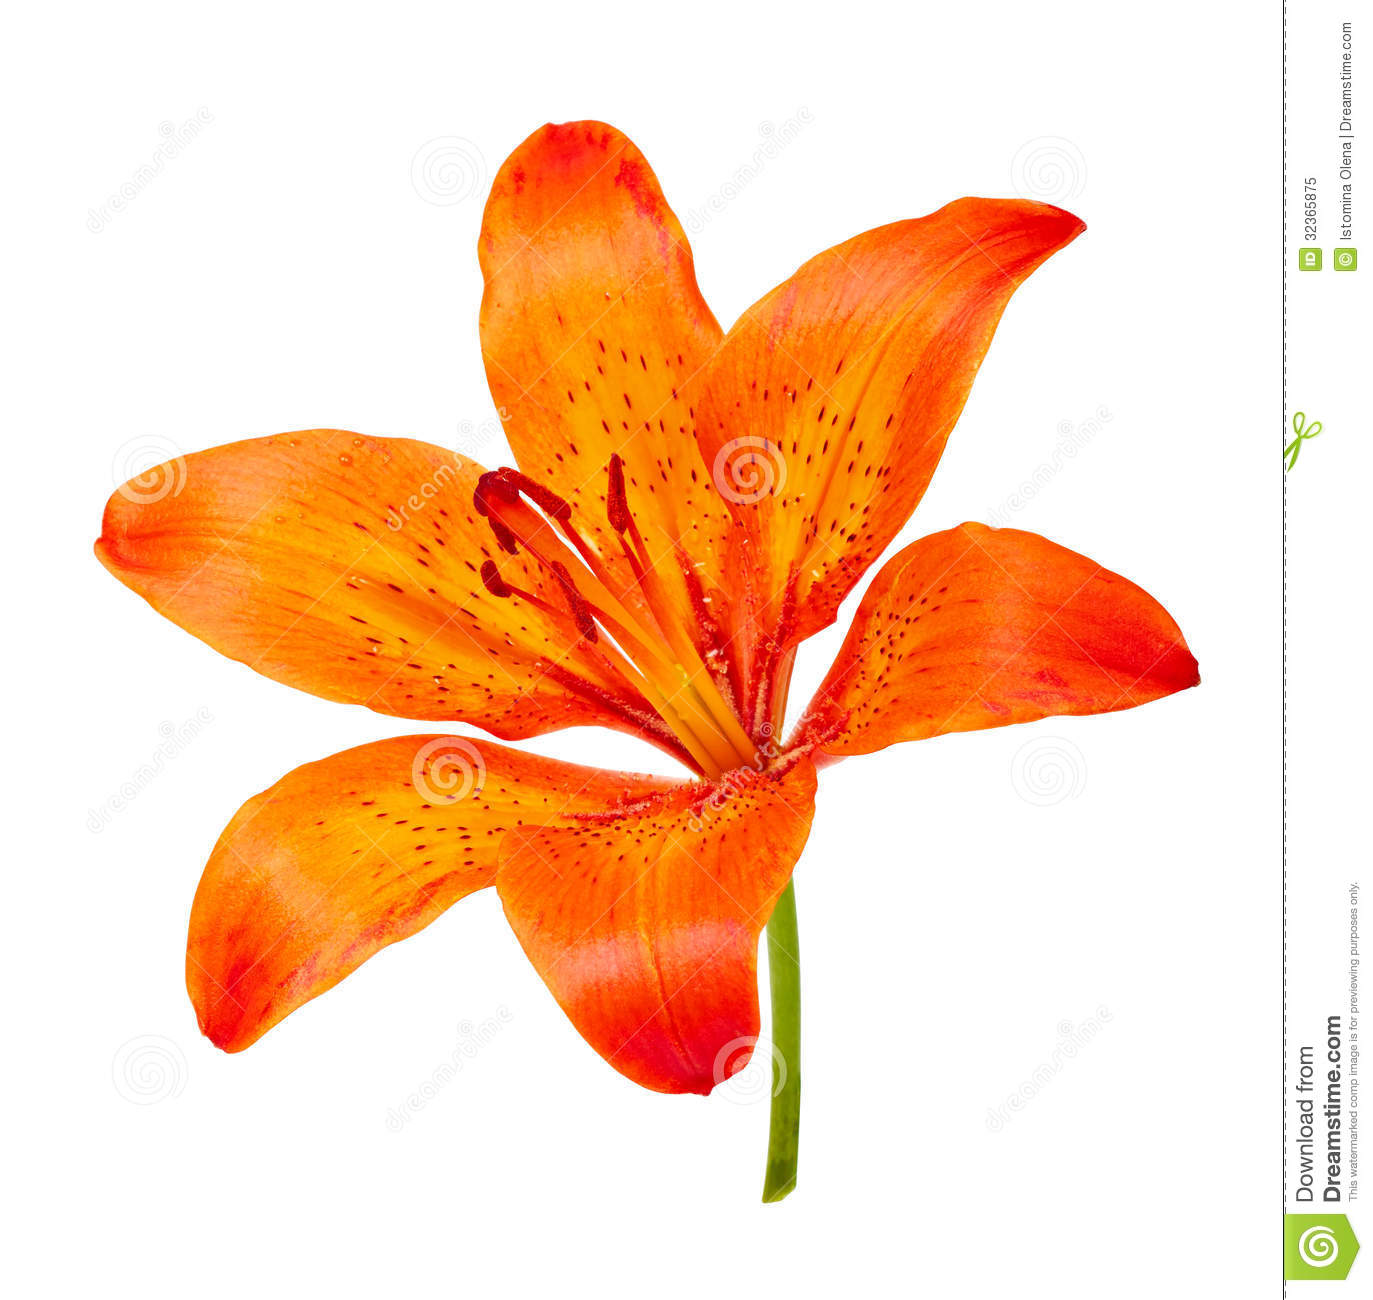 Tiger lily stock image image of beauty closeup celebration 32365875 tiger lily izmirmasajfo Images